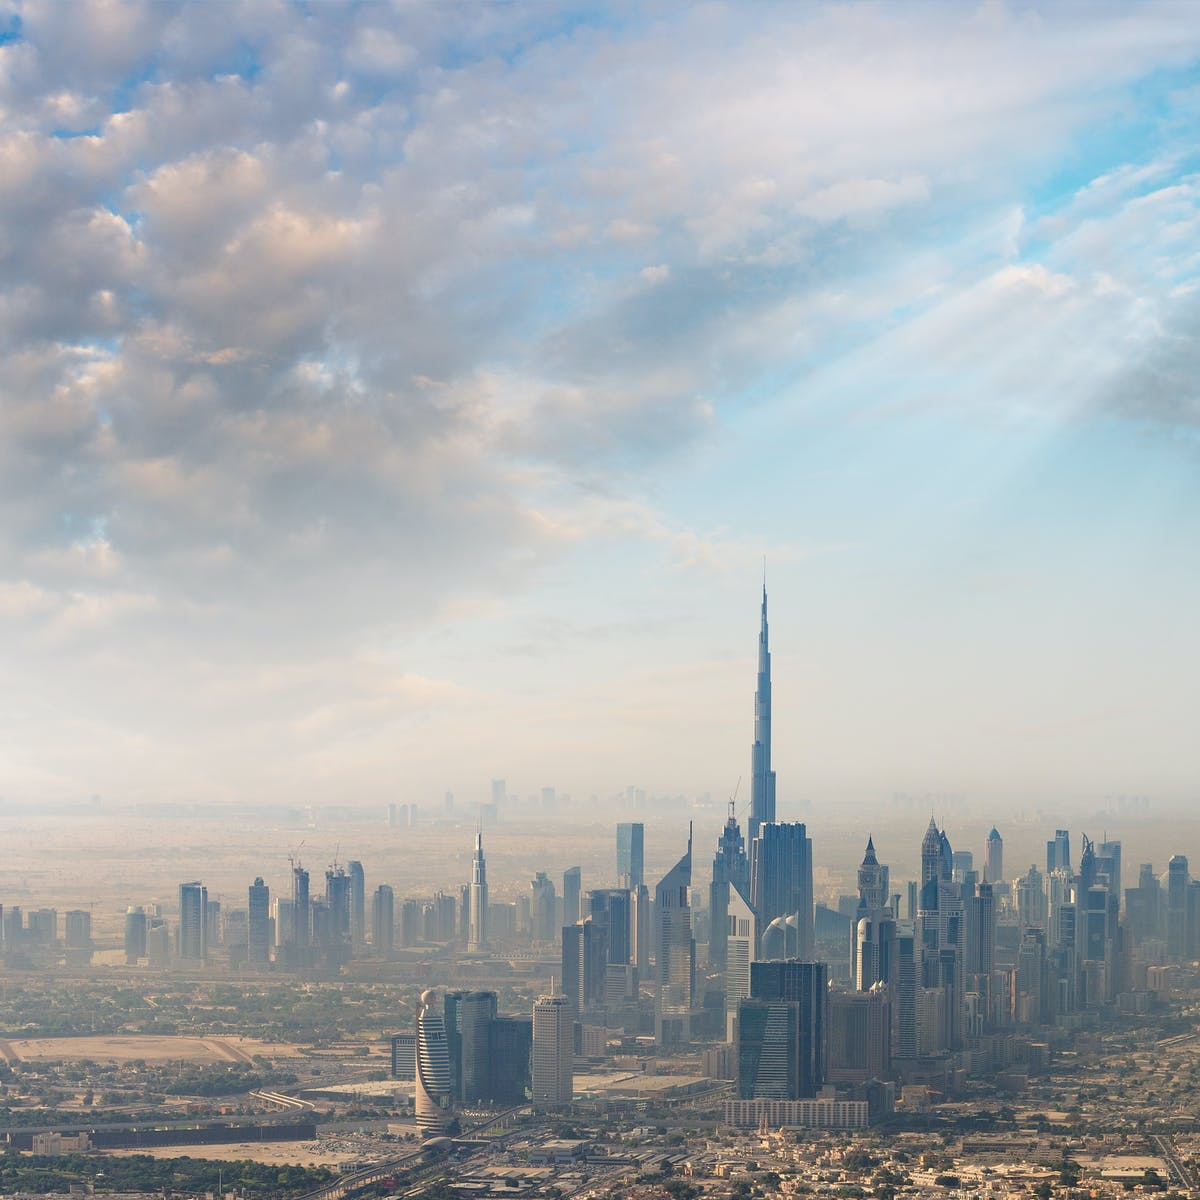 The UAE wants to build a 'rainmaking mountain' – are we all ok with